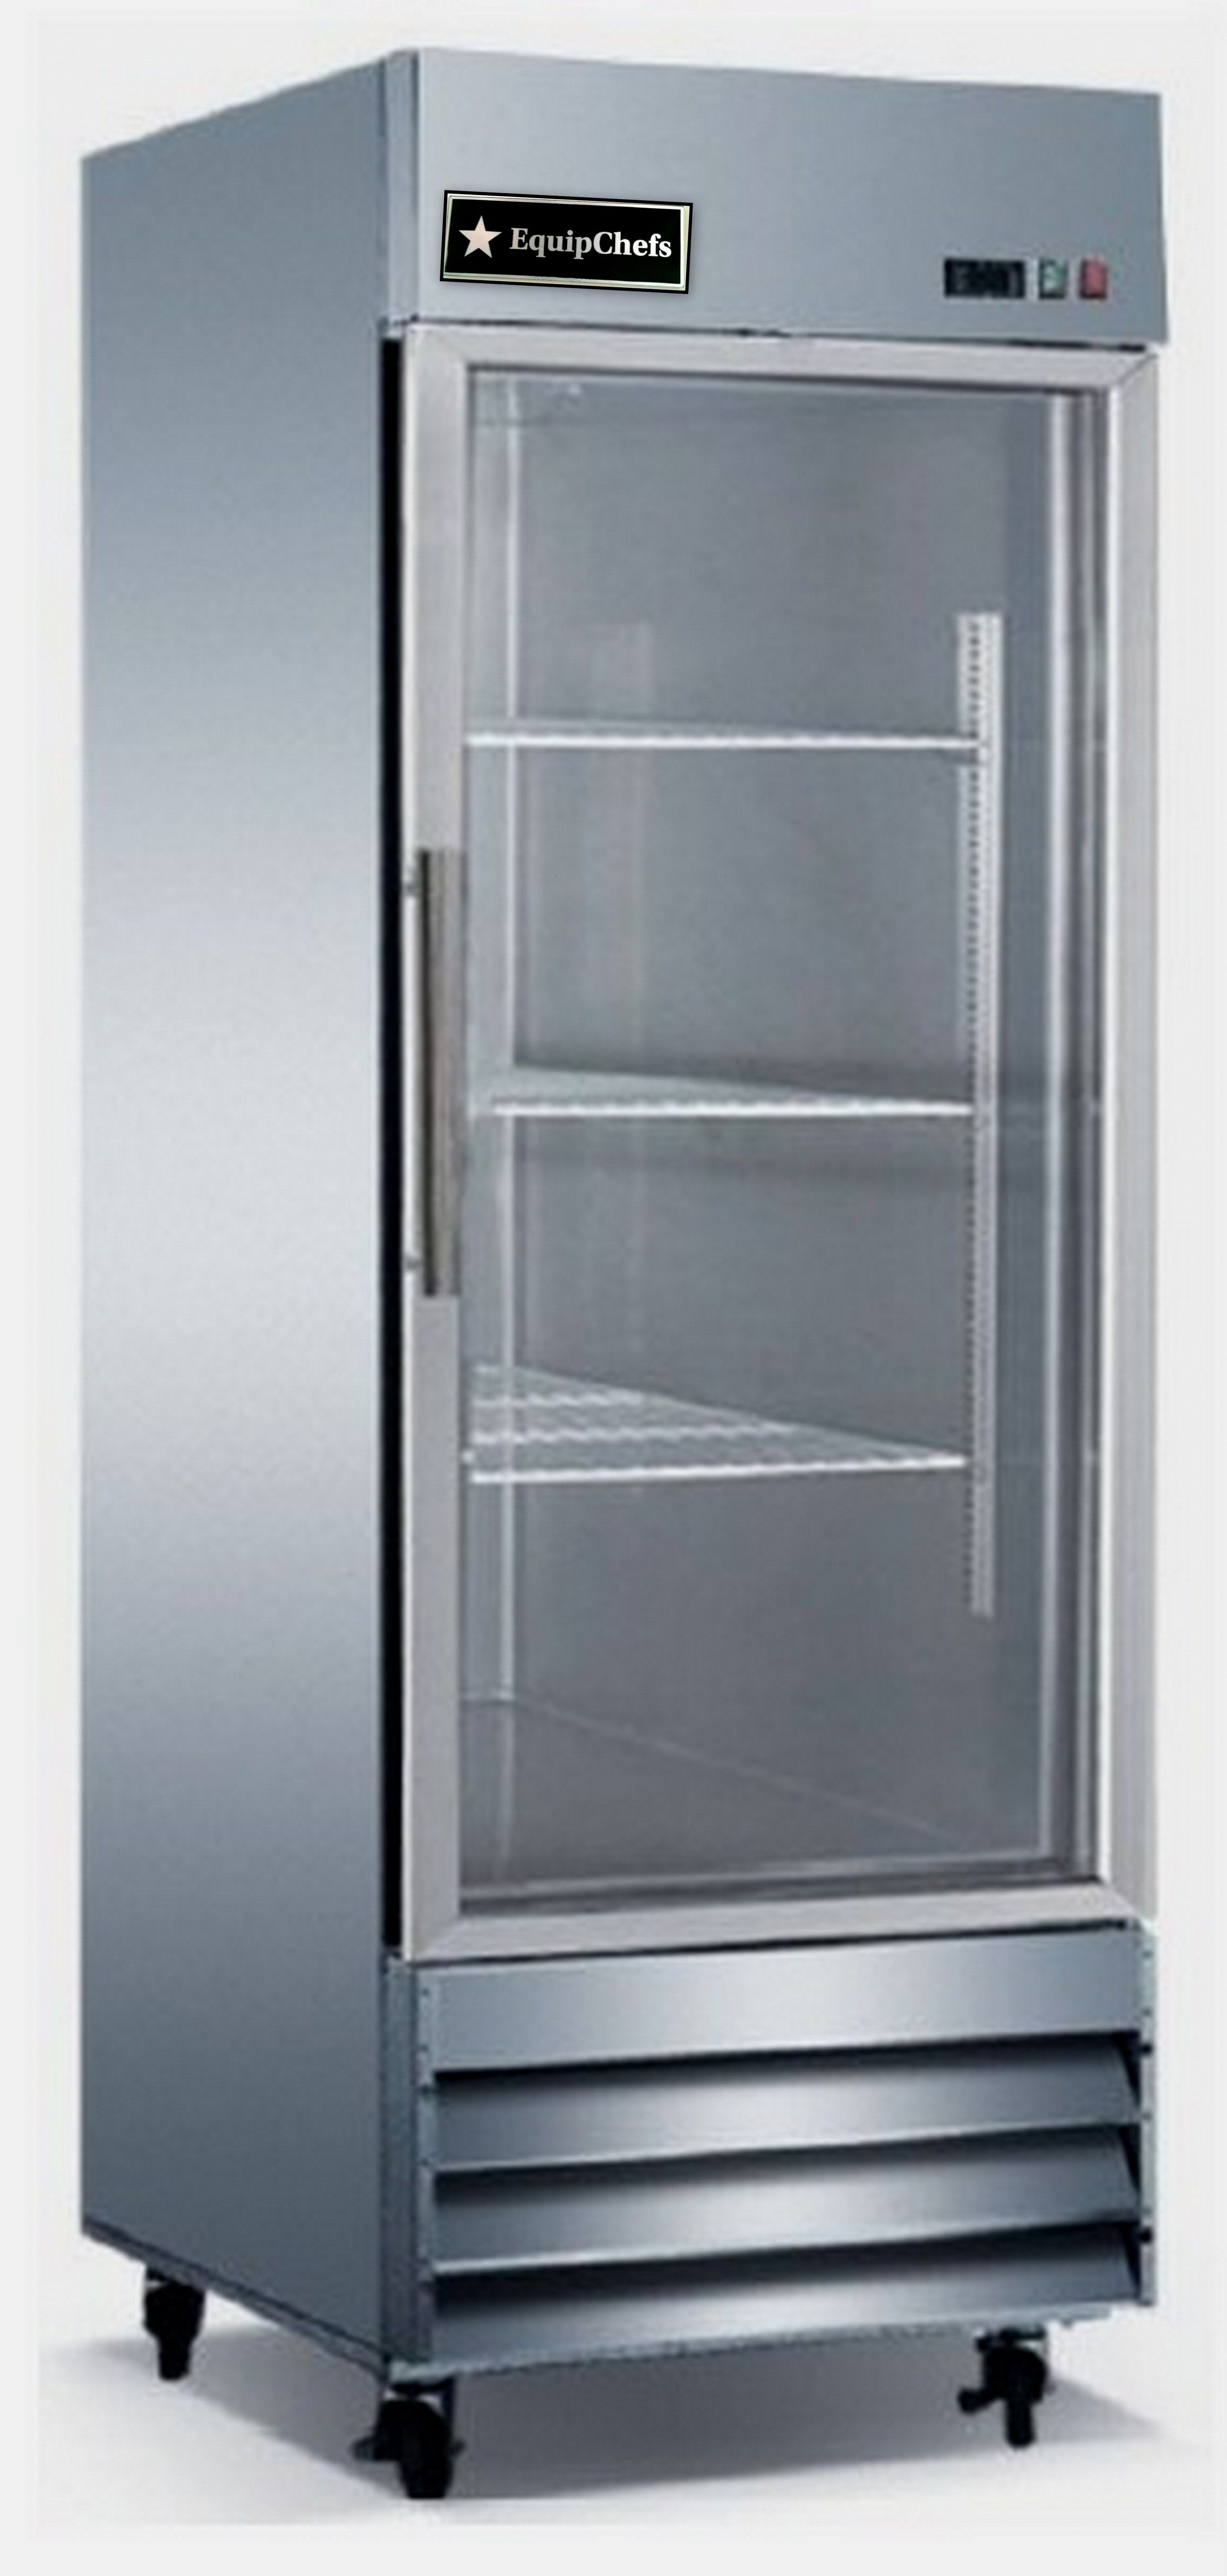 Houston inventory new equipchefs cfd 1rr g reach in for 1 glass door refrigerator